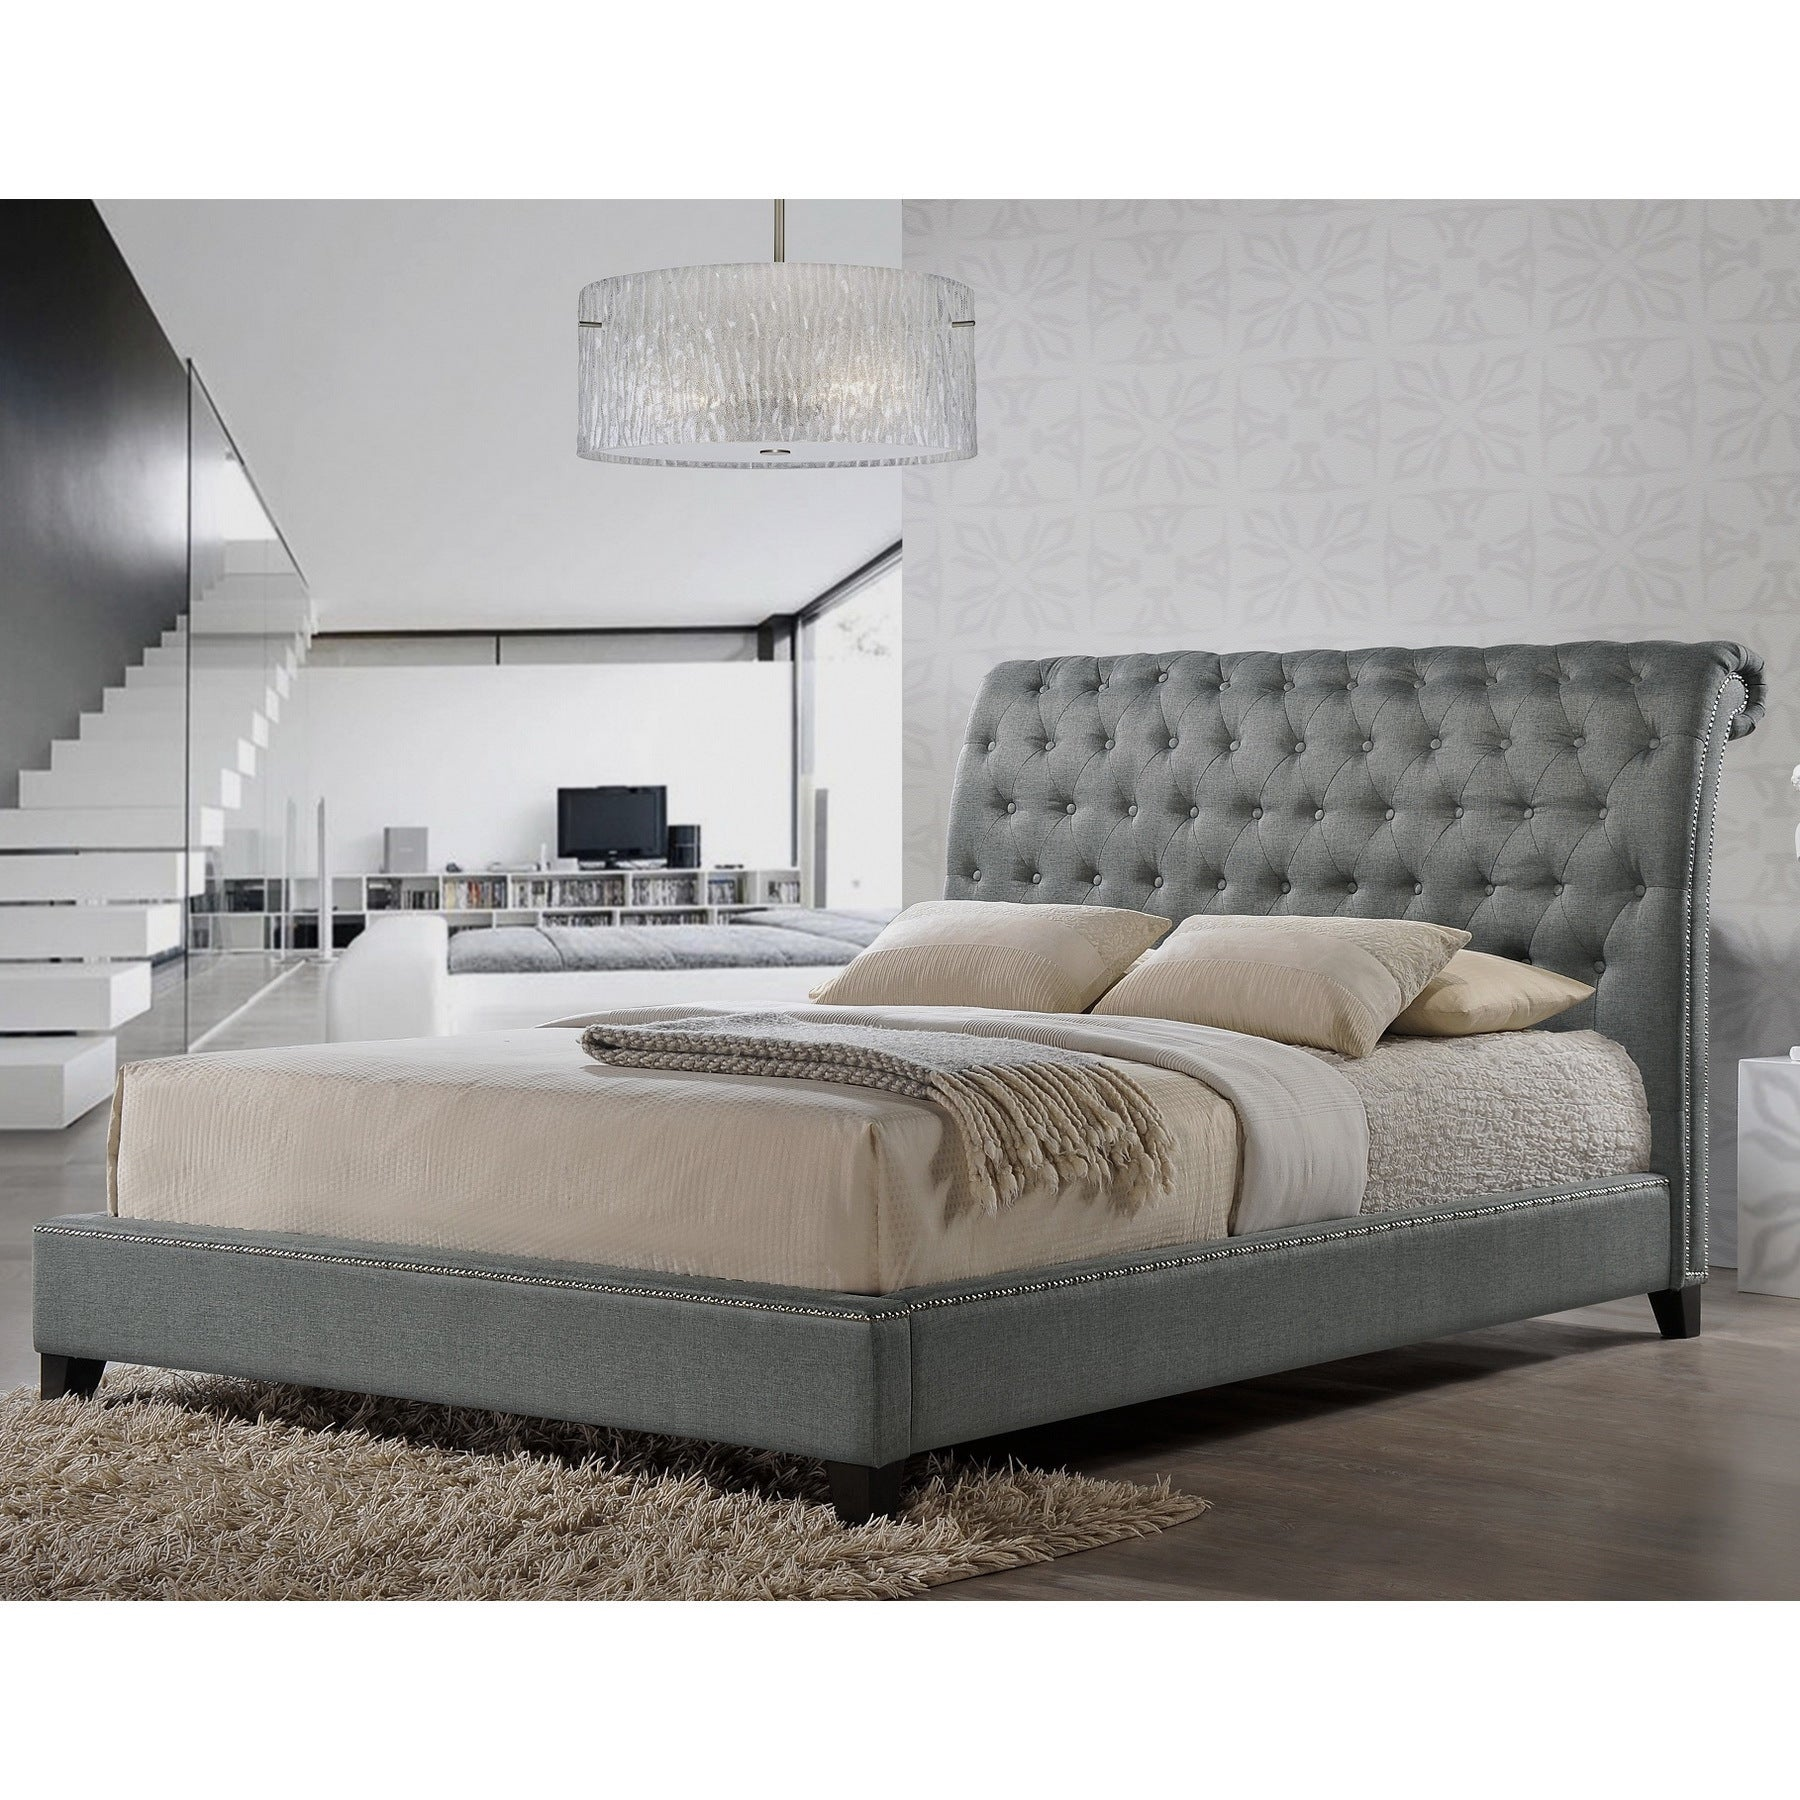 Shop jazmin tufted gray modern bed with upholstered headboard free shipping today overstock 9214889